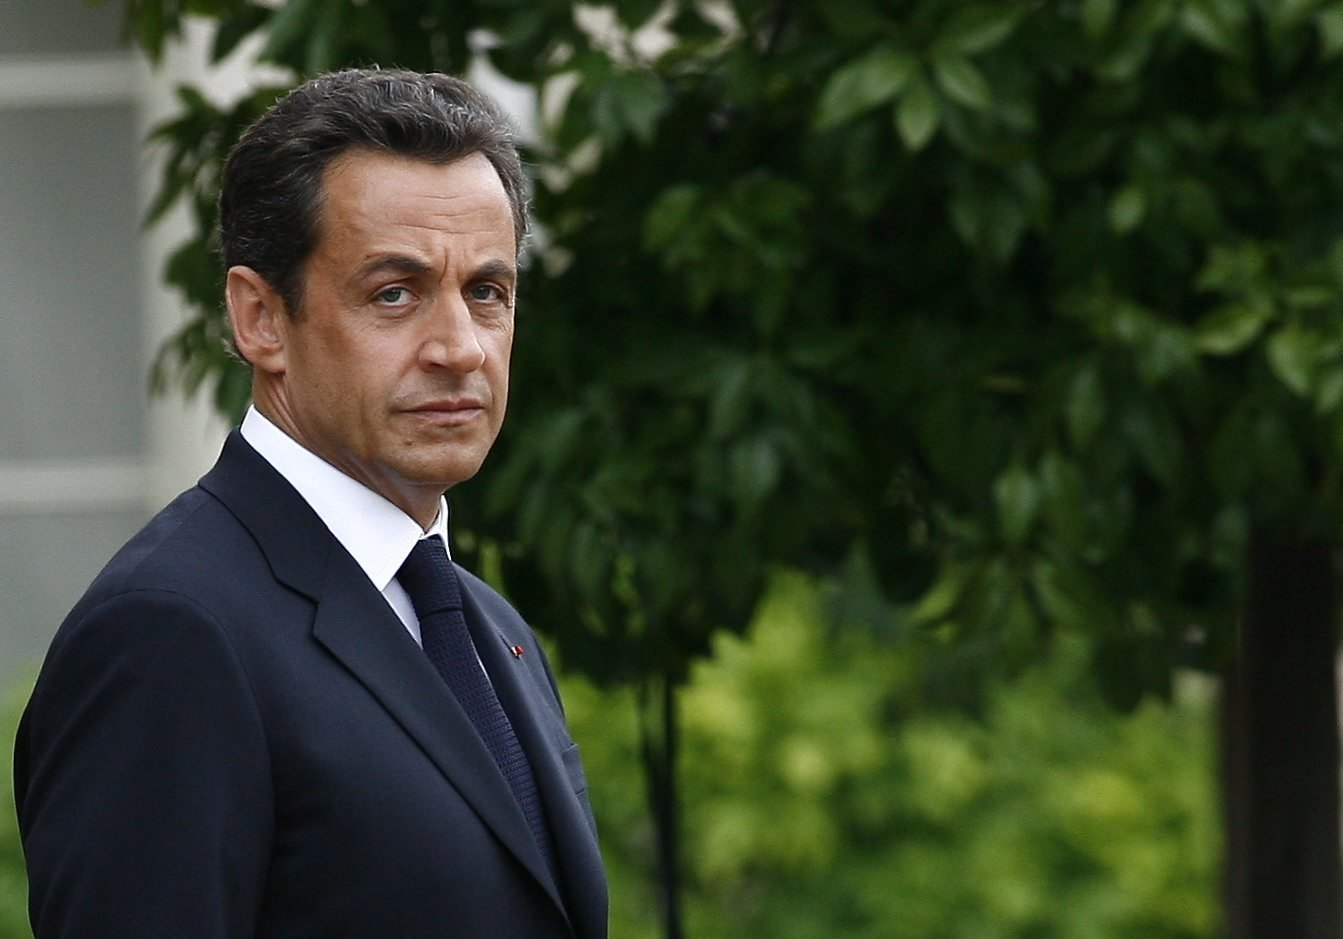 Nicolas Sarkozy has been sentenced to a year in prison.. though he can serve his sentence at home. Photo: Corbis via Getty